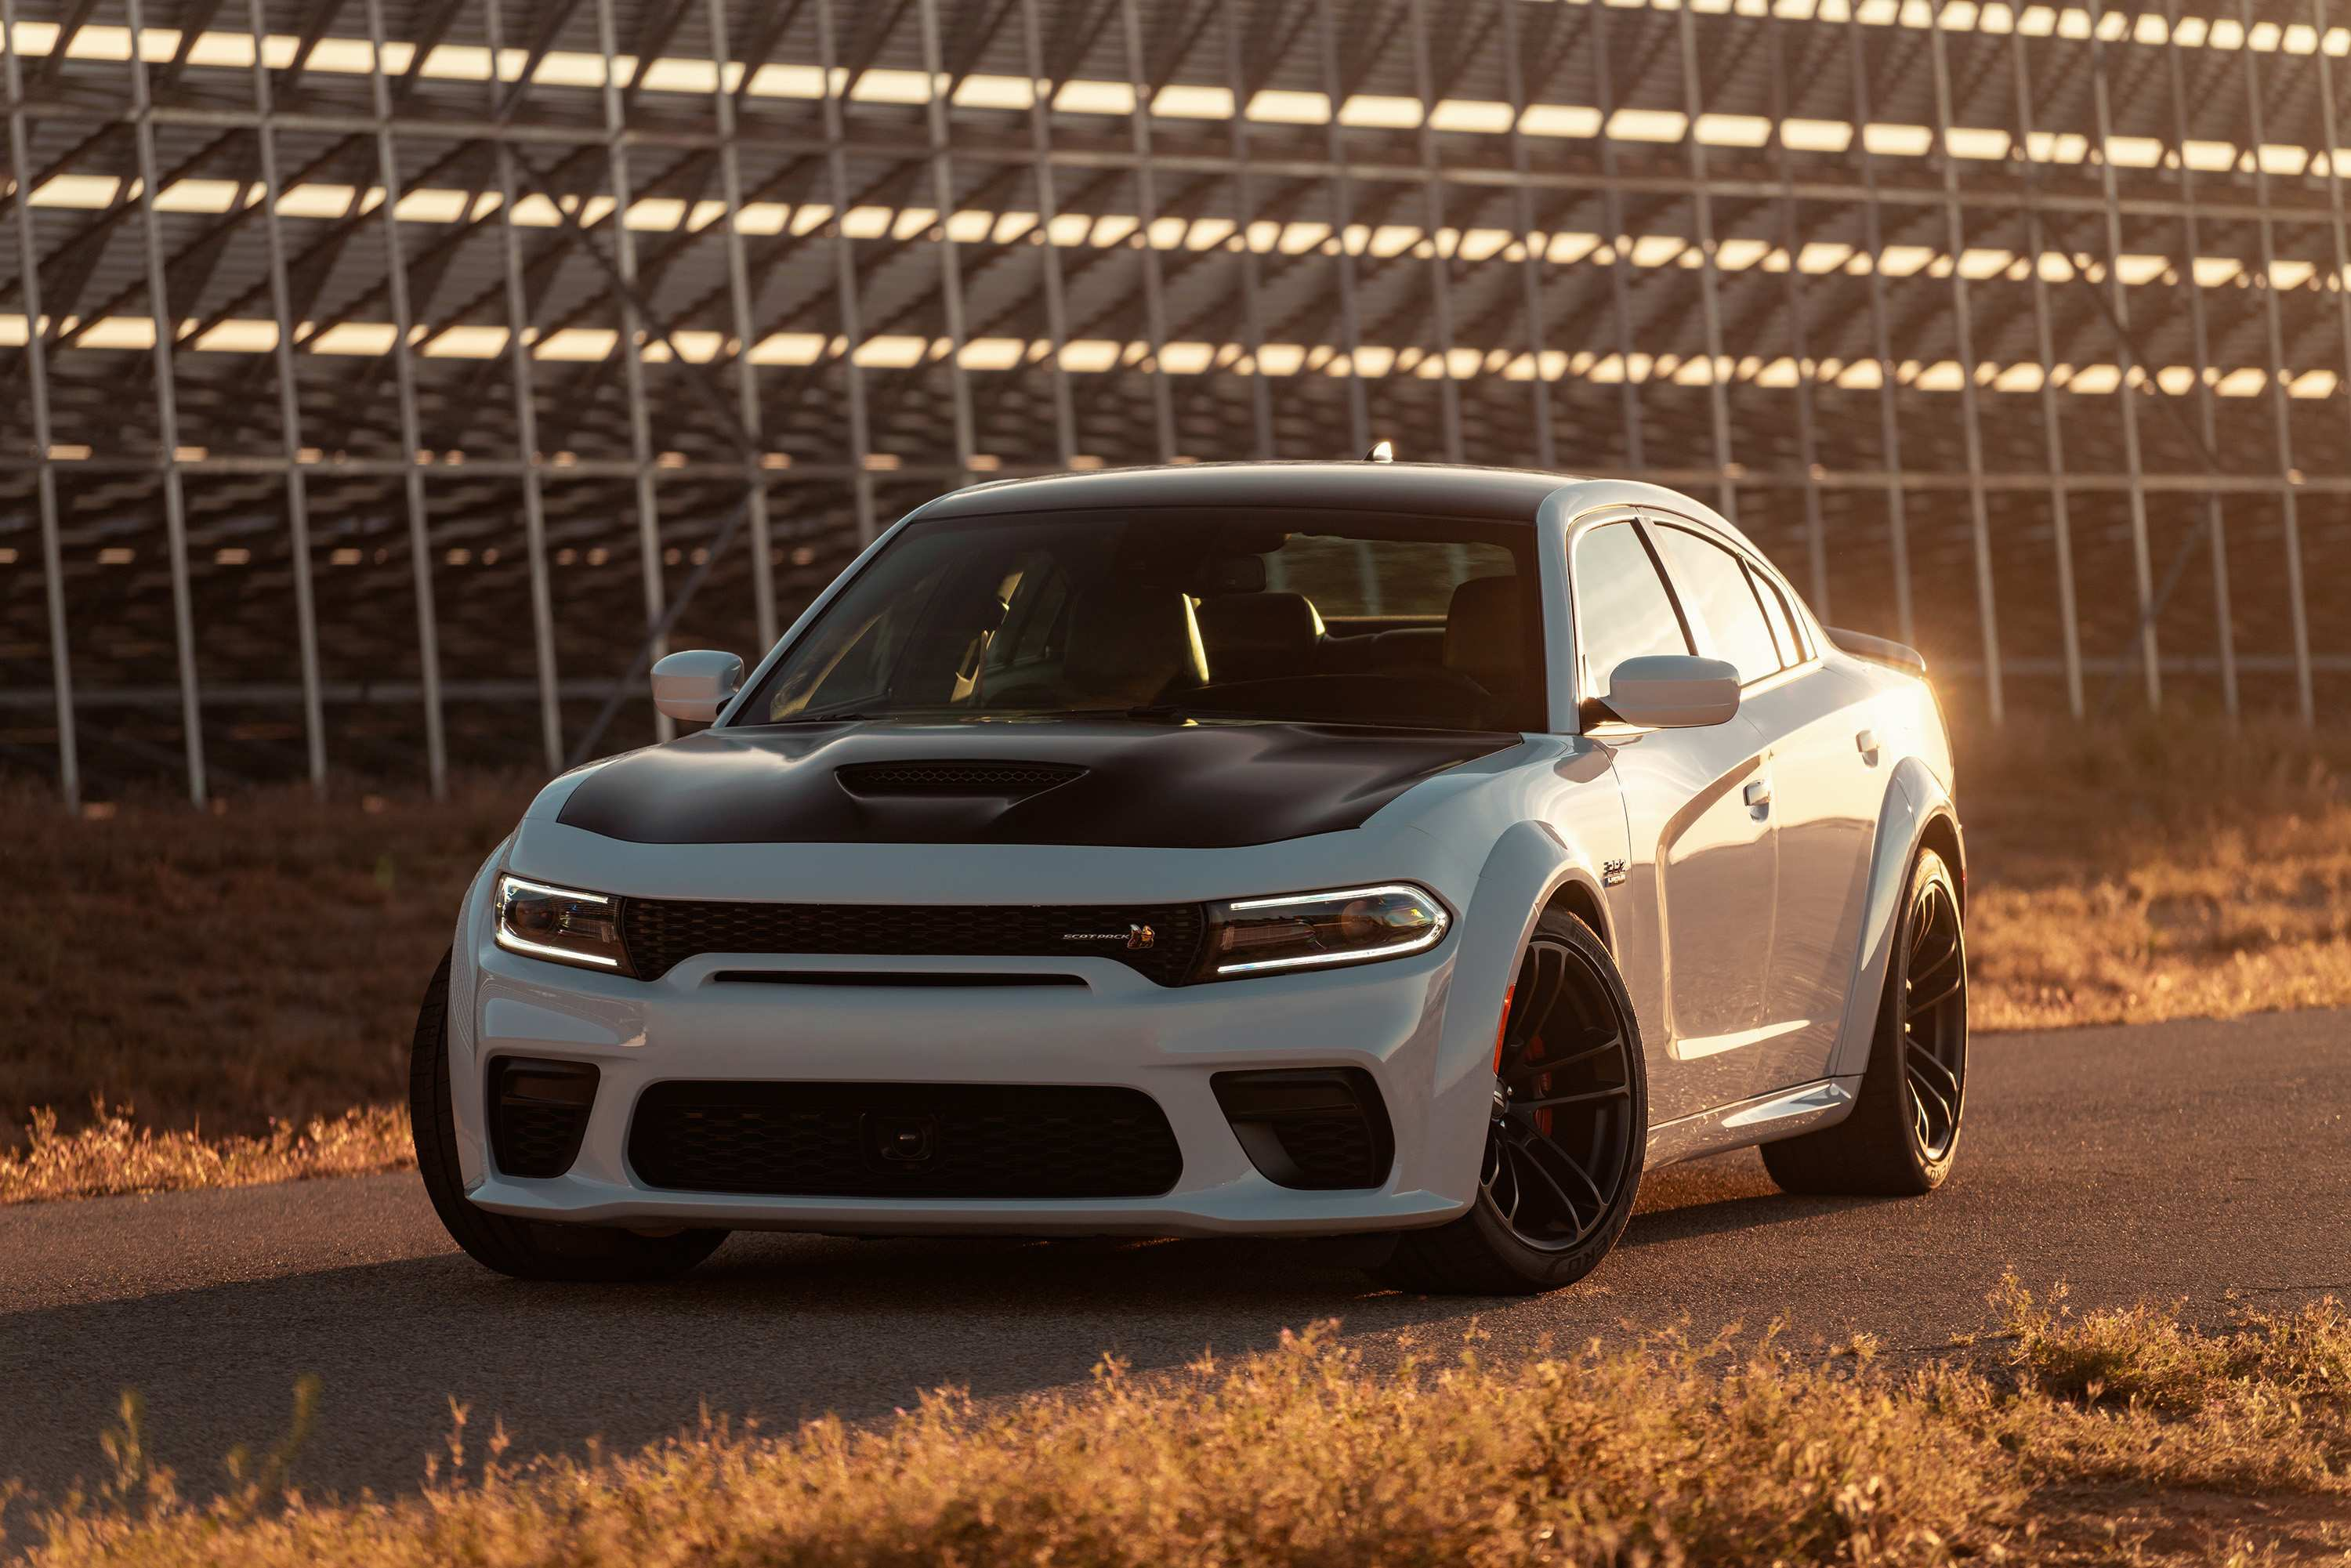 42 New 2020 Dodge Charger Scat Pack Widebody Ratings